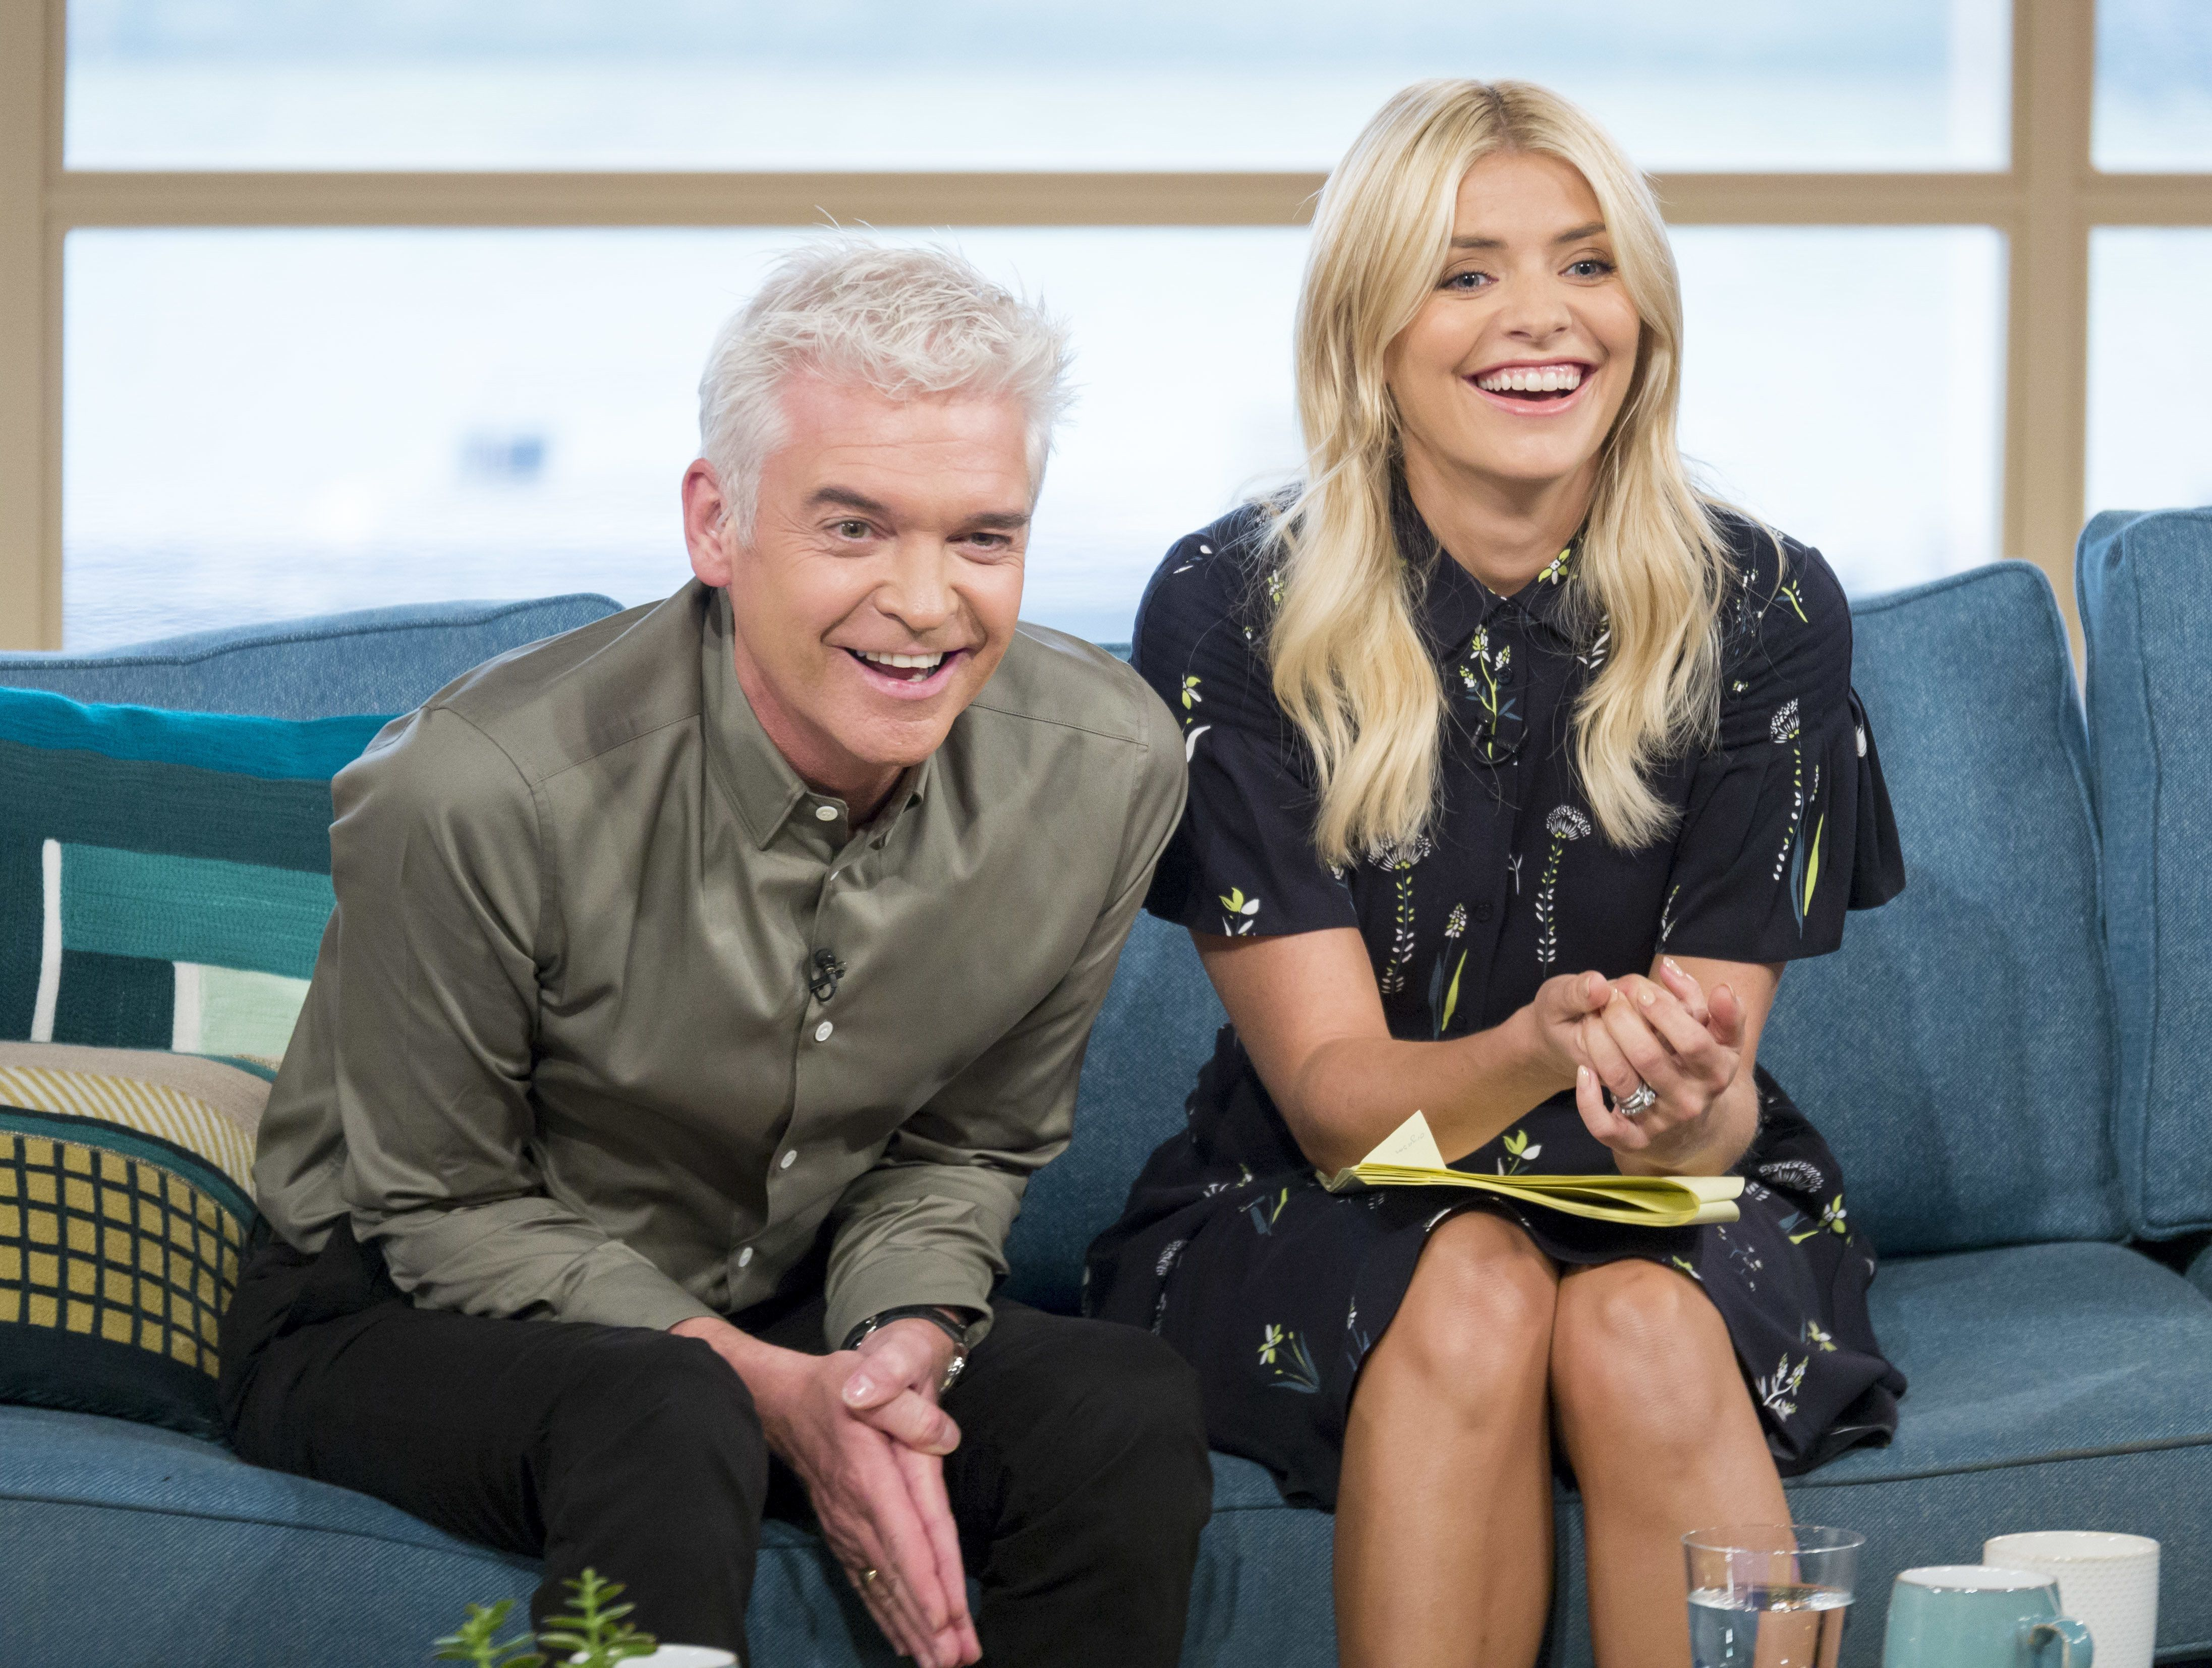 Holly Willoughby reveals 'negative comments' over appearance in early career